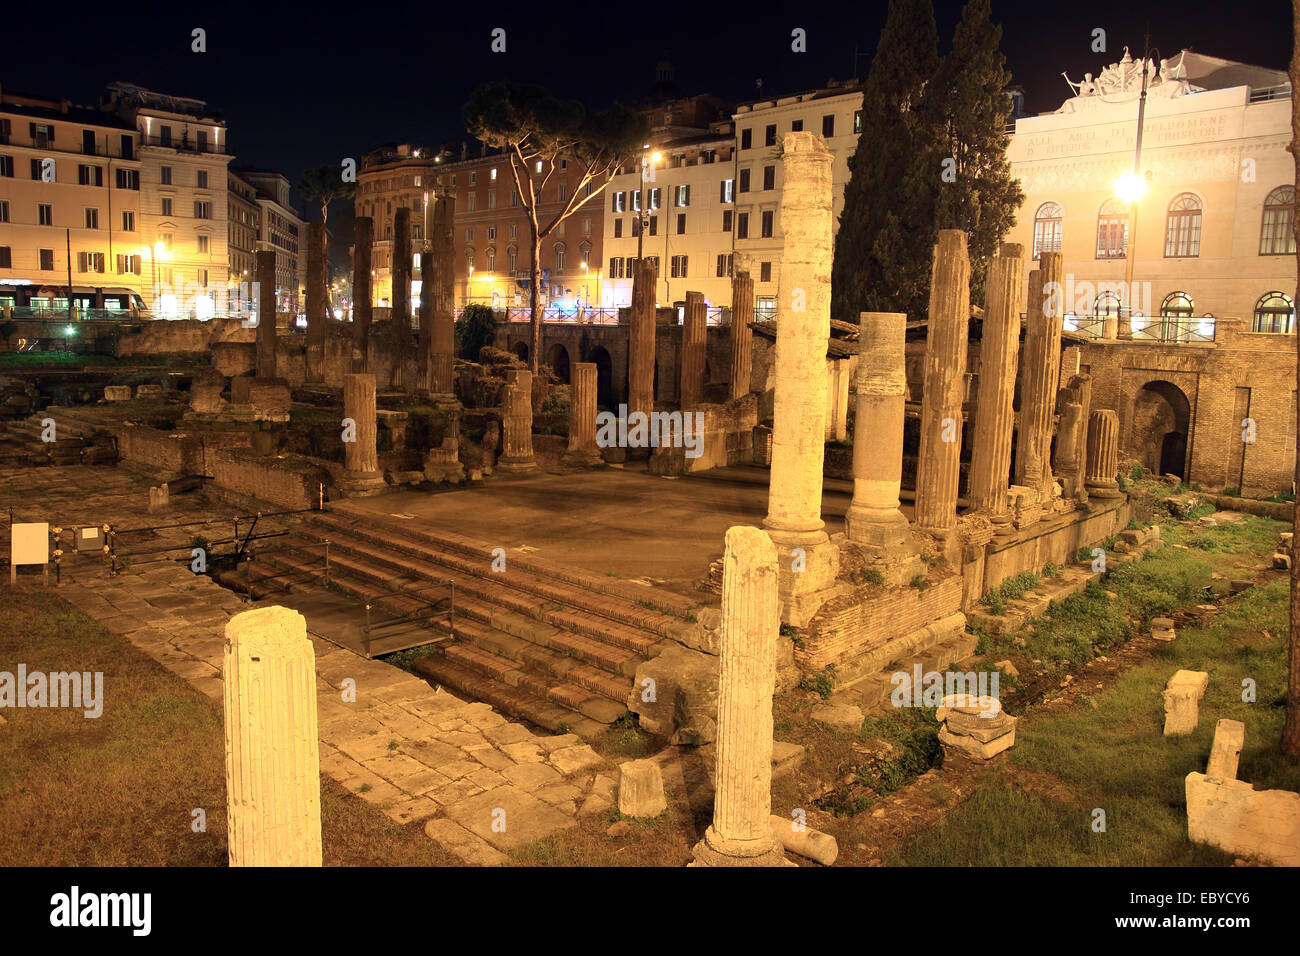 area sacra Roman ancient ruins in Largo di Torre Argentina square by Night, Rome, Italy - Stock Image